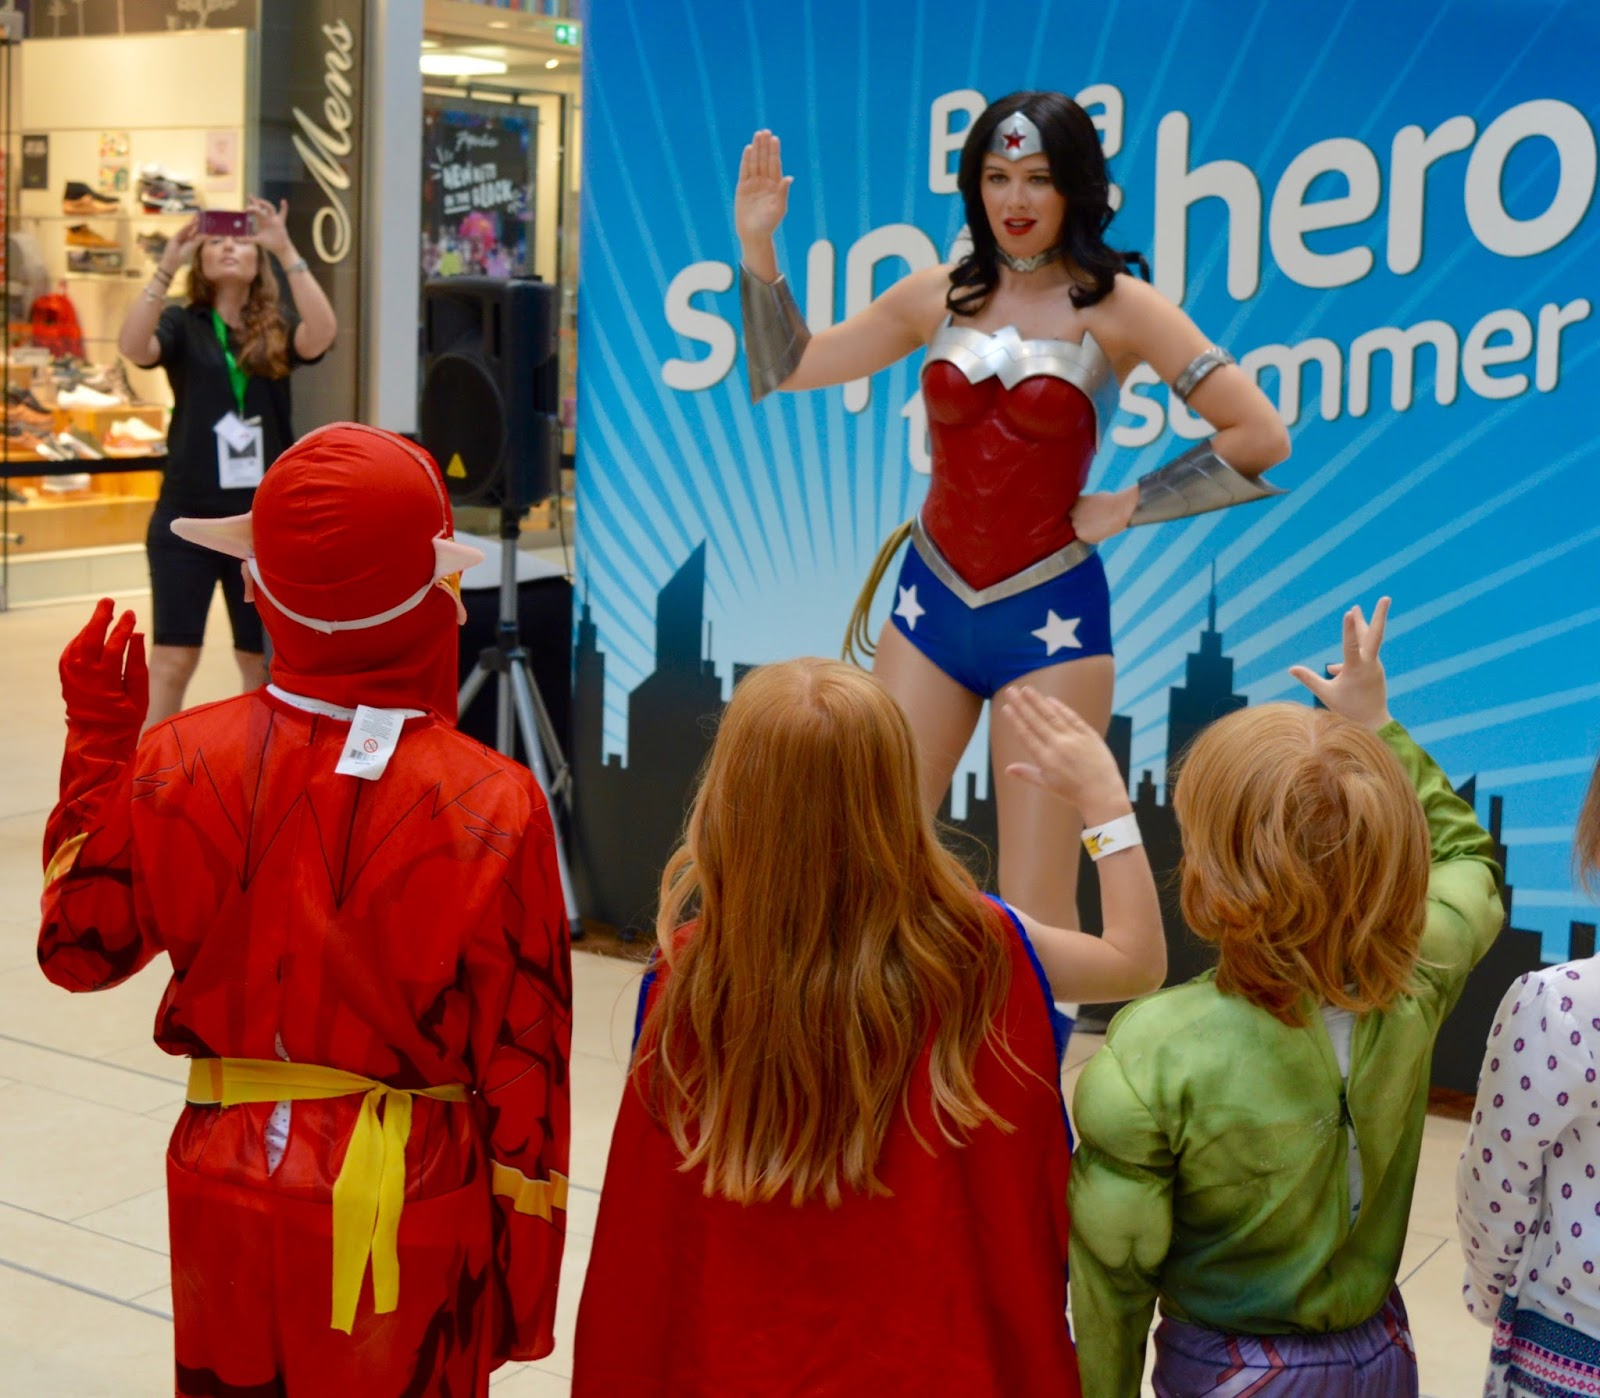 We met WonderWoman at intu Eldon Square